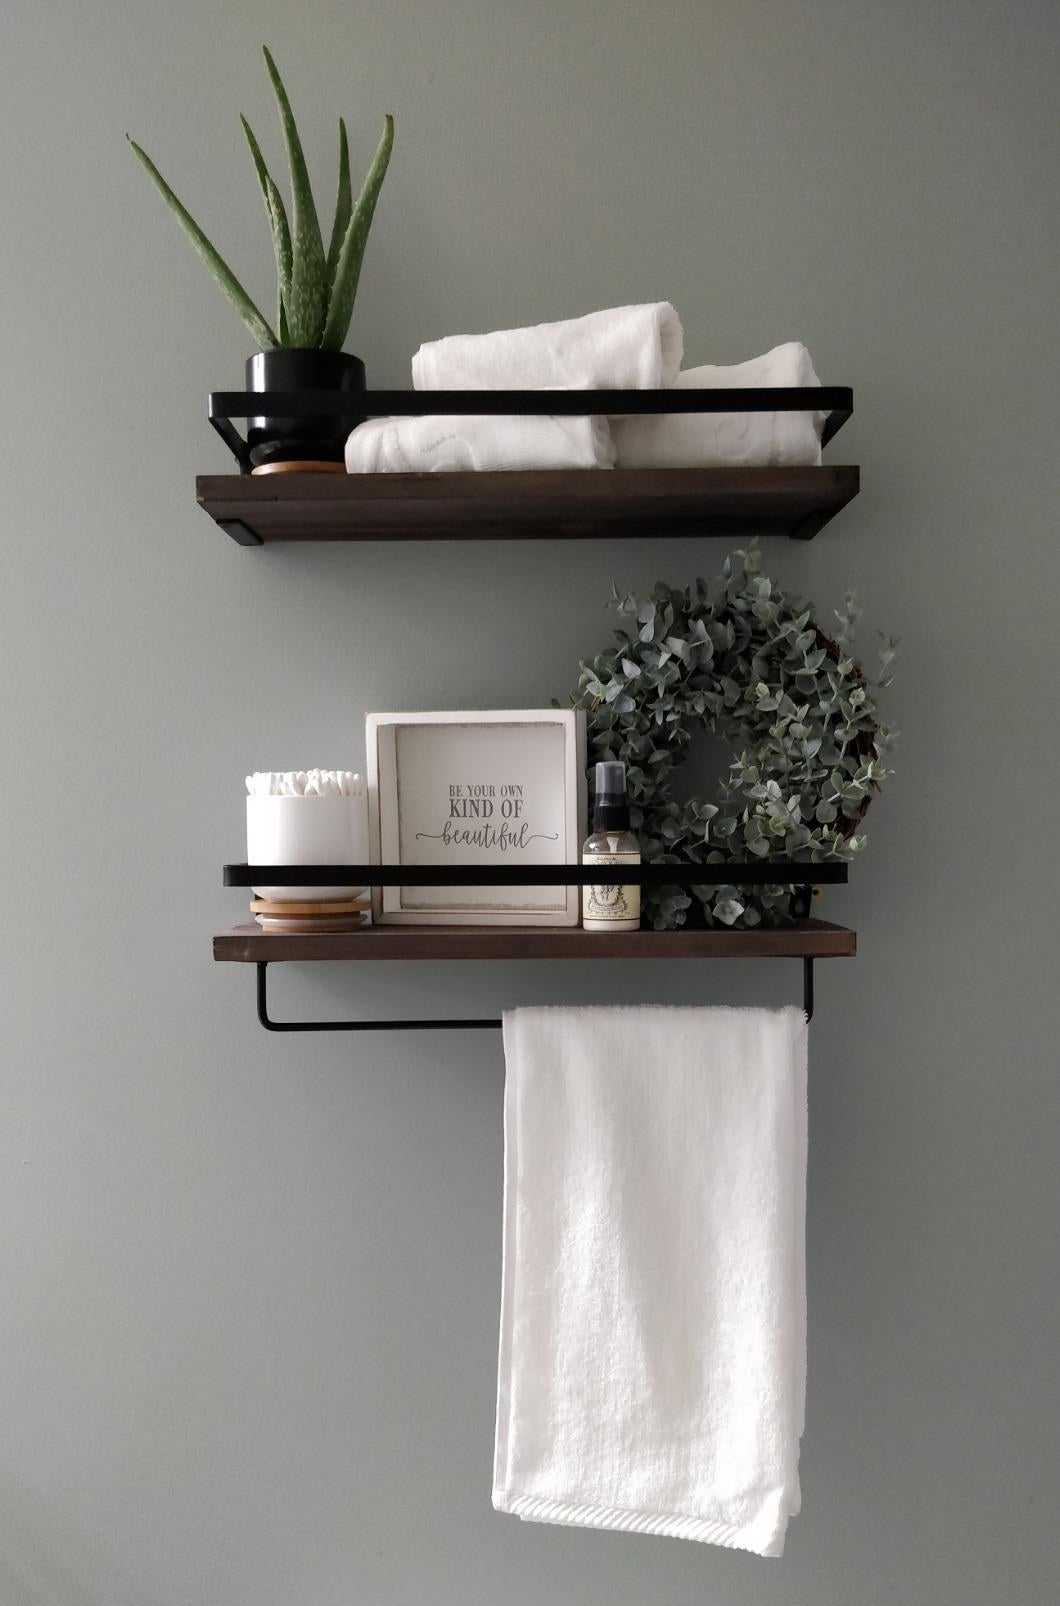 Reviewer pic of the two hanging shelves on the wall with towels and other bathroom items on them